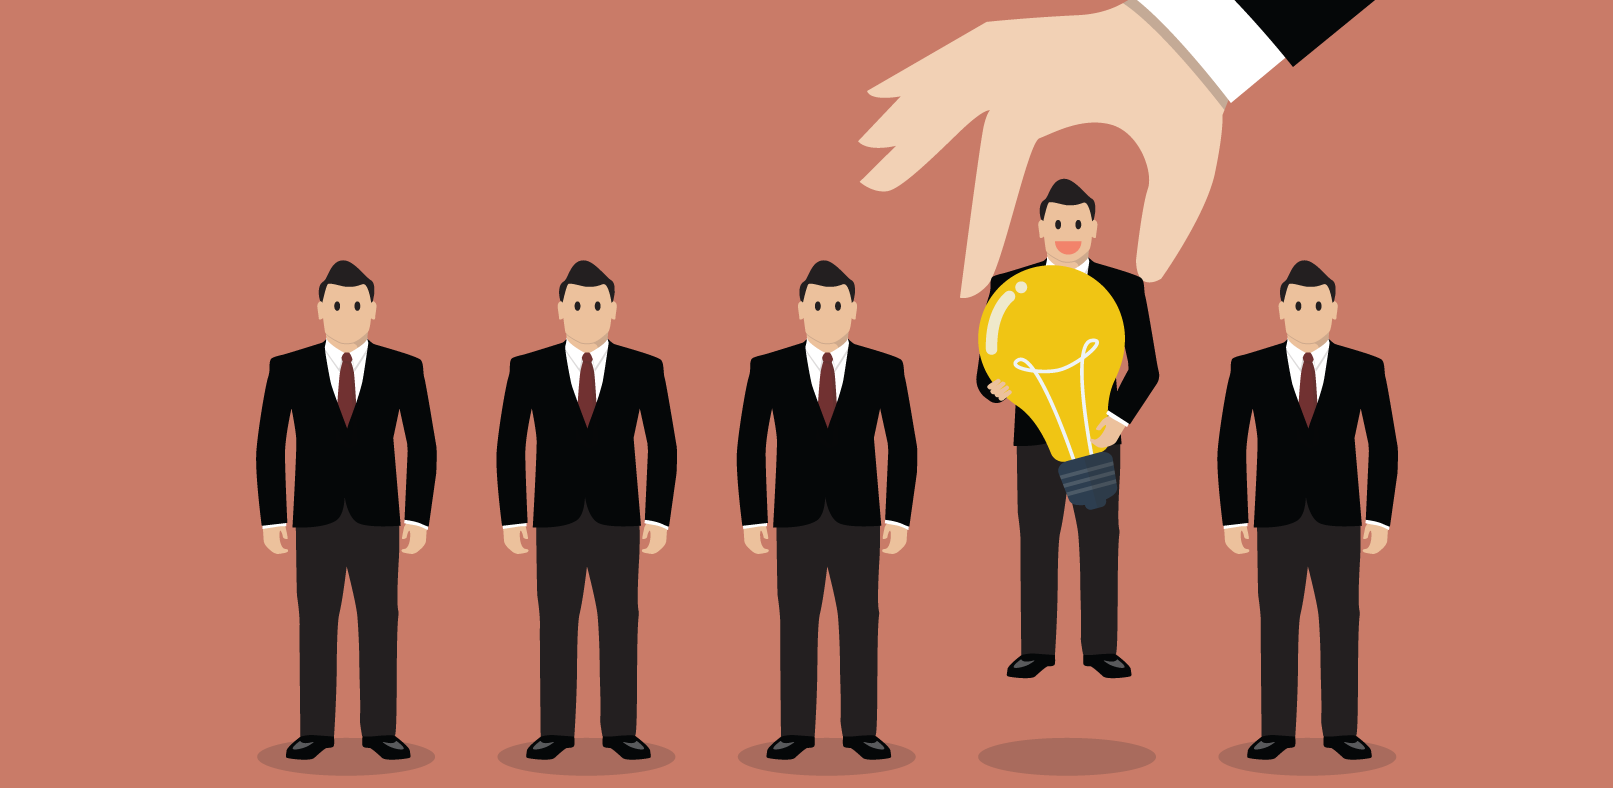 Struggling to Find Qualified Talent? This Could Be the Reason